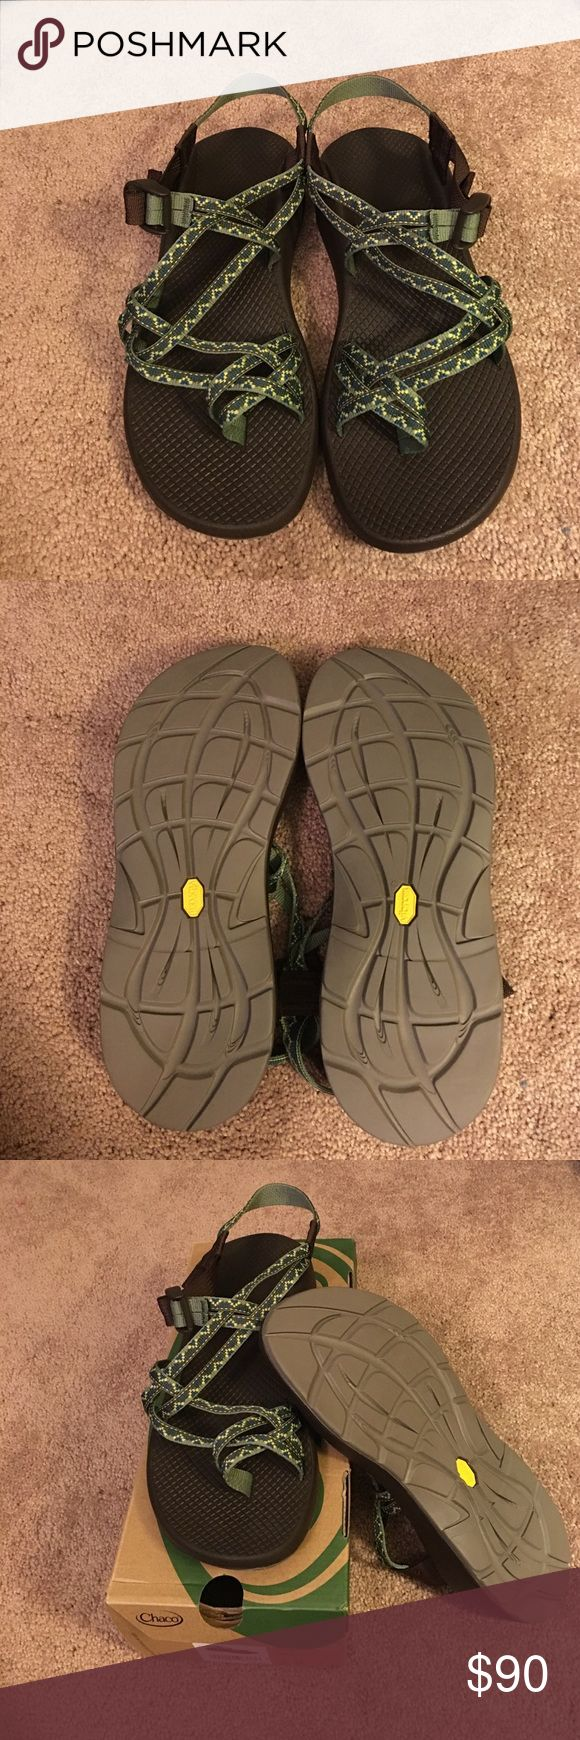 Women's Chaco Sandals Brand New....Never Worn....Women's Chaco Sandals...Shoes in the box...MAKE AN OFFER... Chacos Shoes Sandals